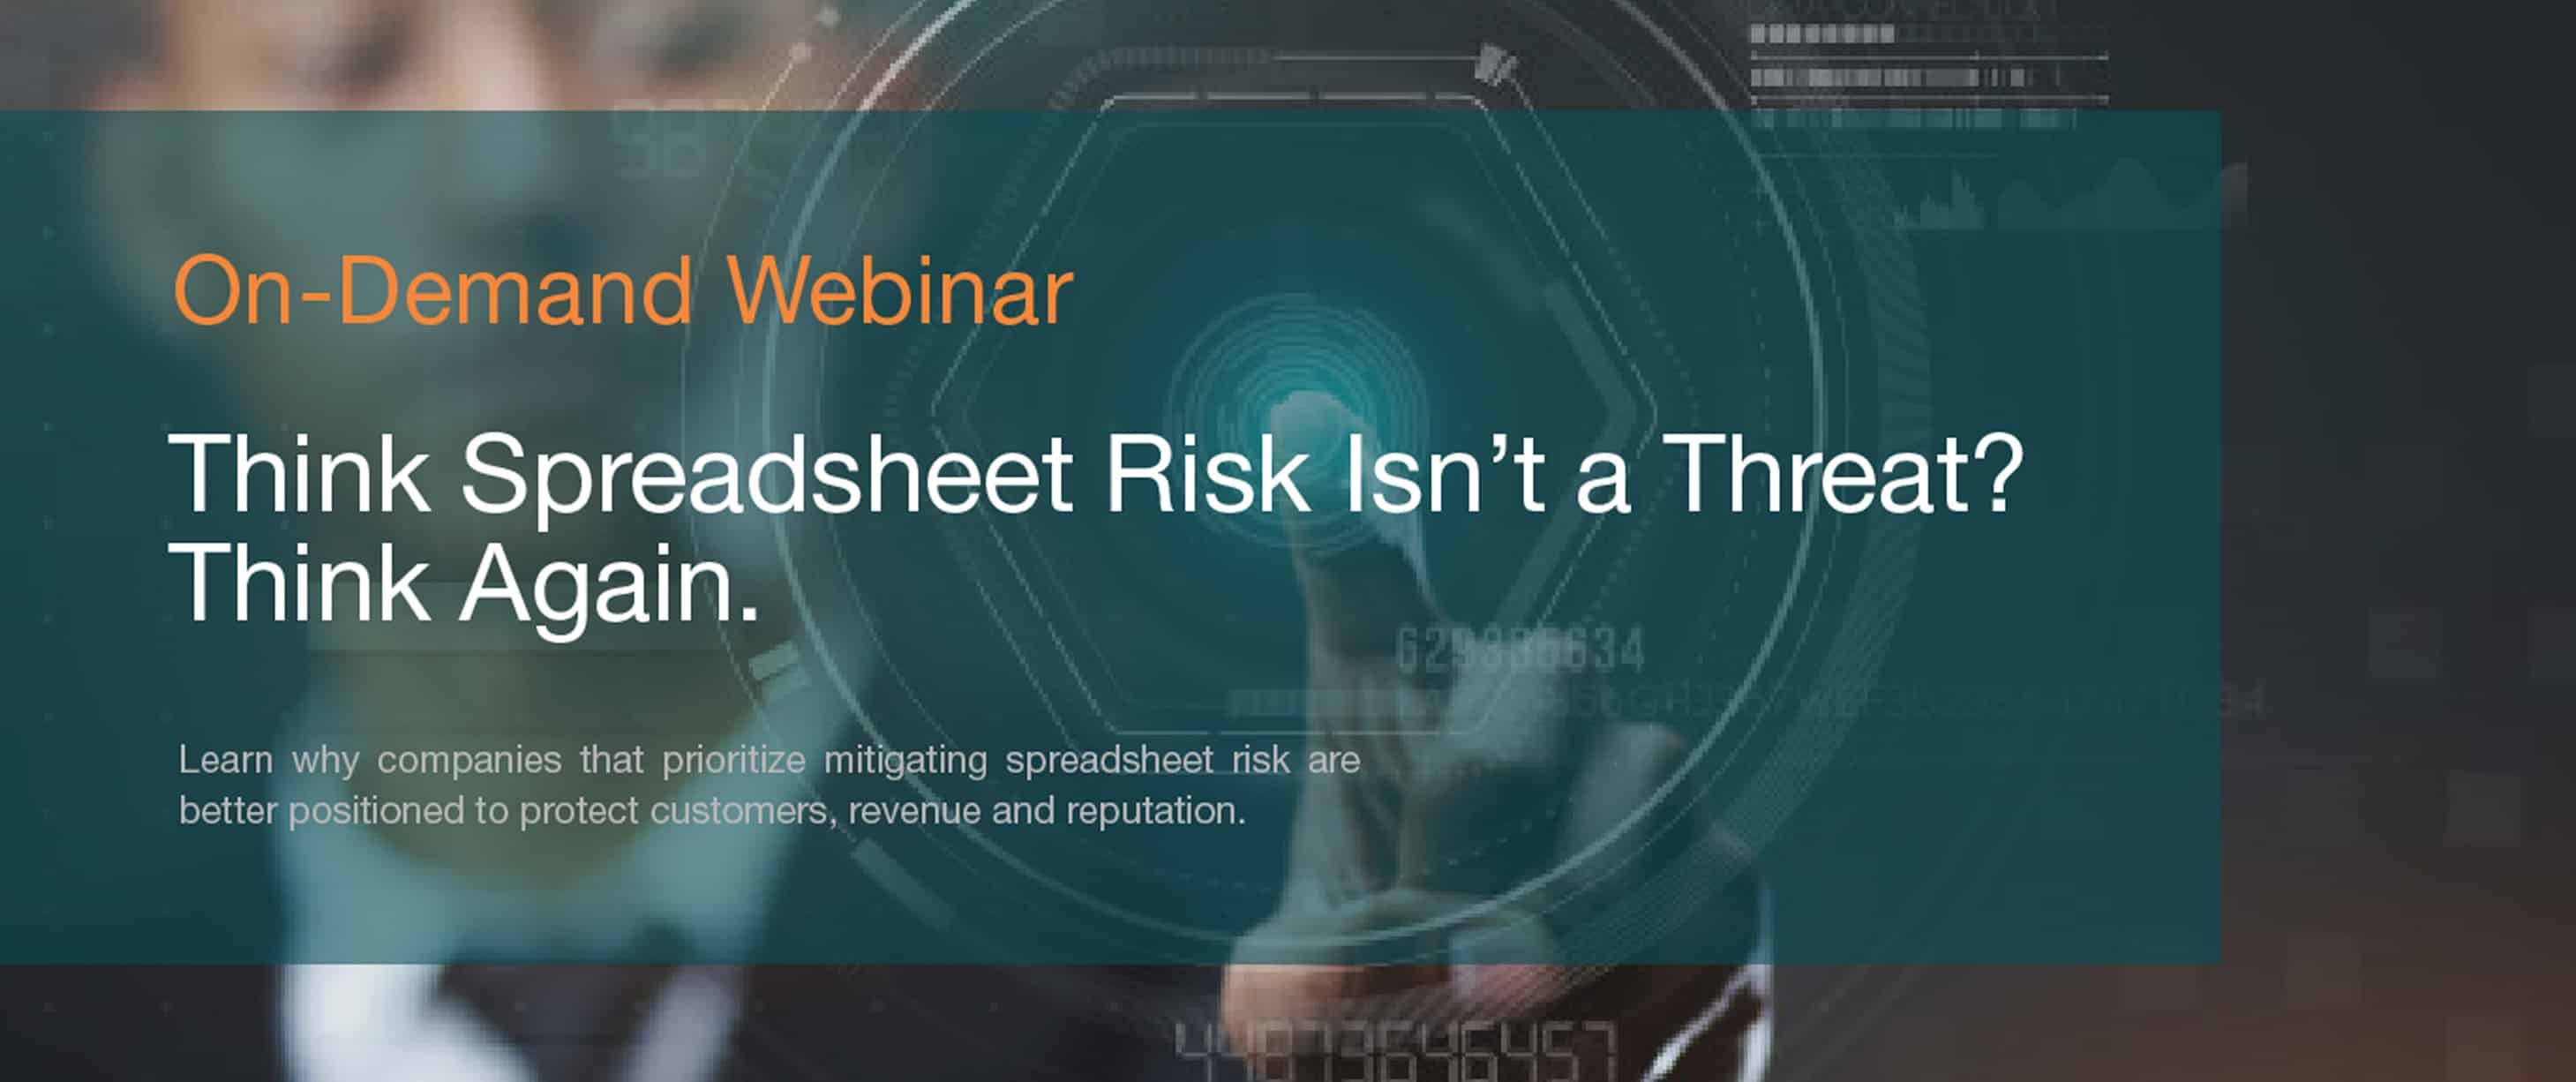 Think Spreadsheet Risk Isn't a Threat? Think Again.